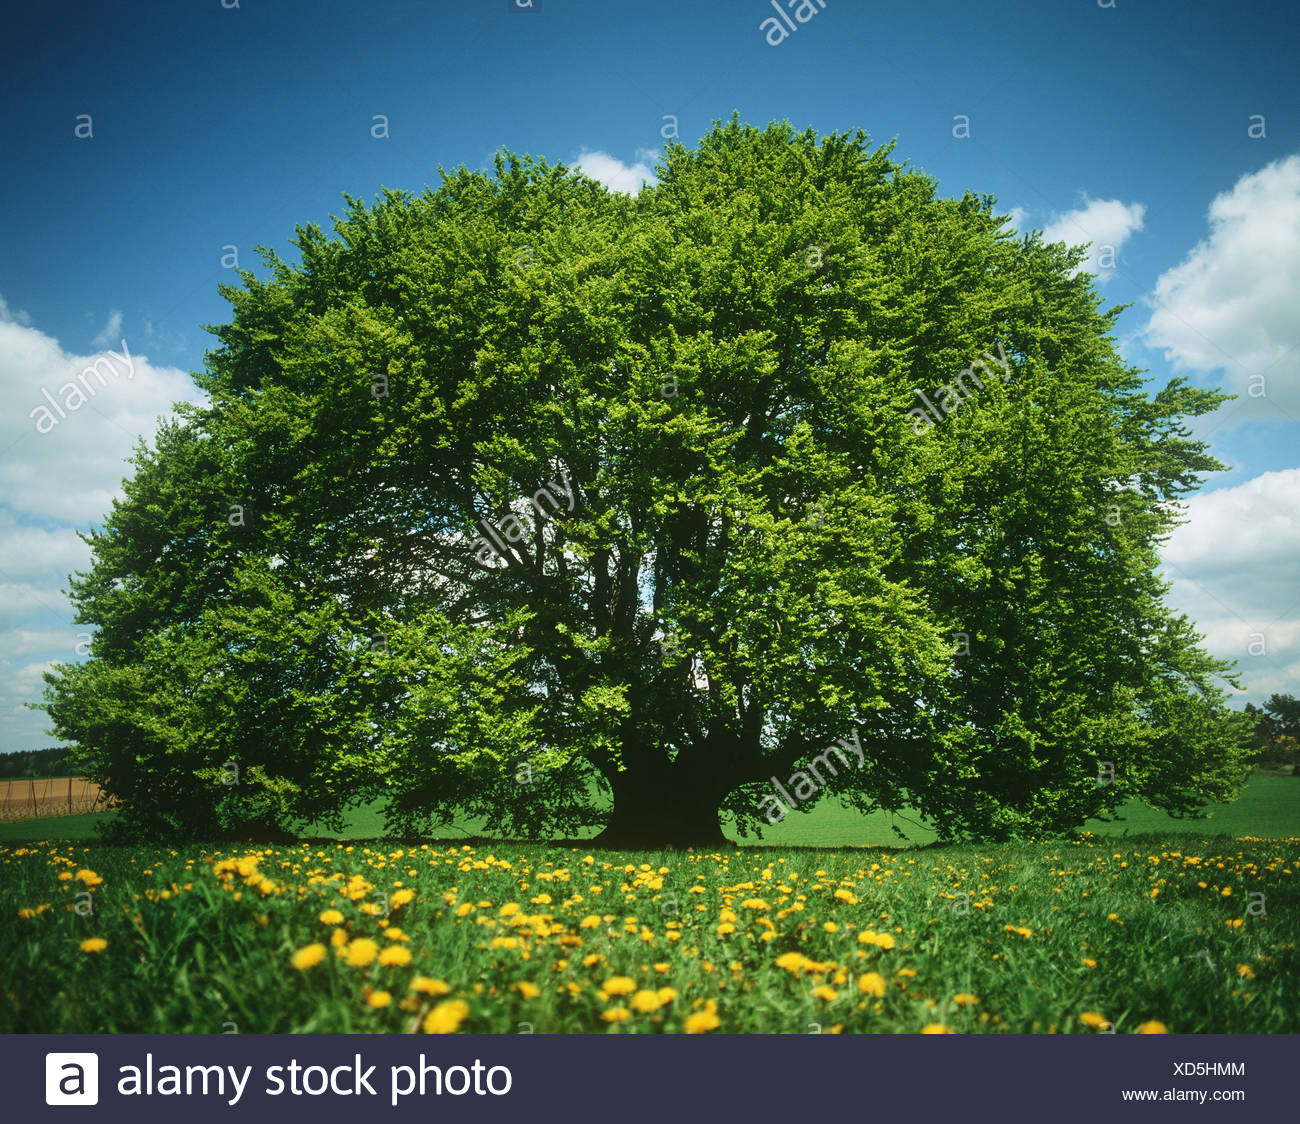 Tree in spring - Stock Image